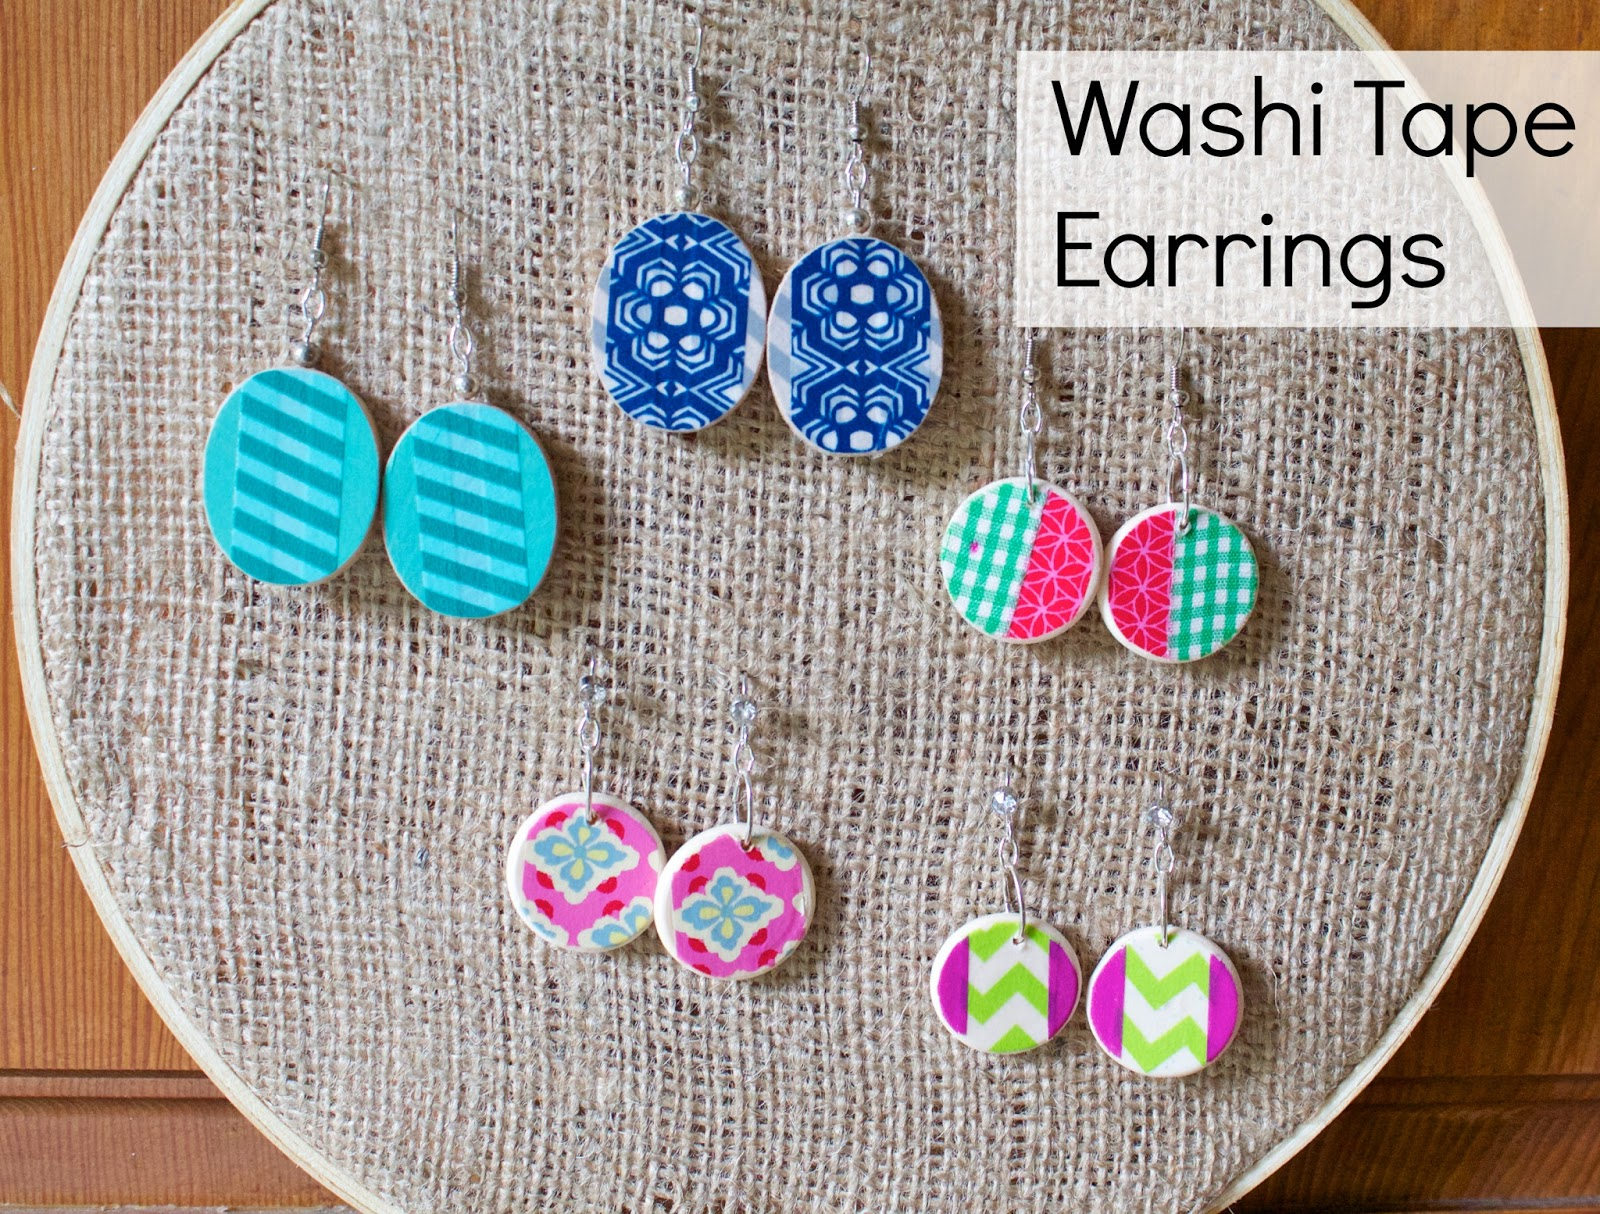 Washi Tape Projects Alluring Of Washi Tape Earrings Picture